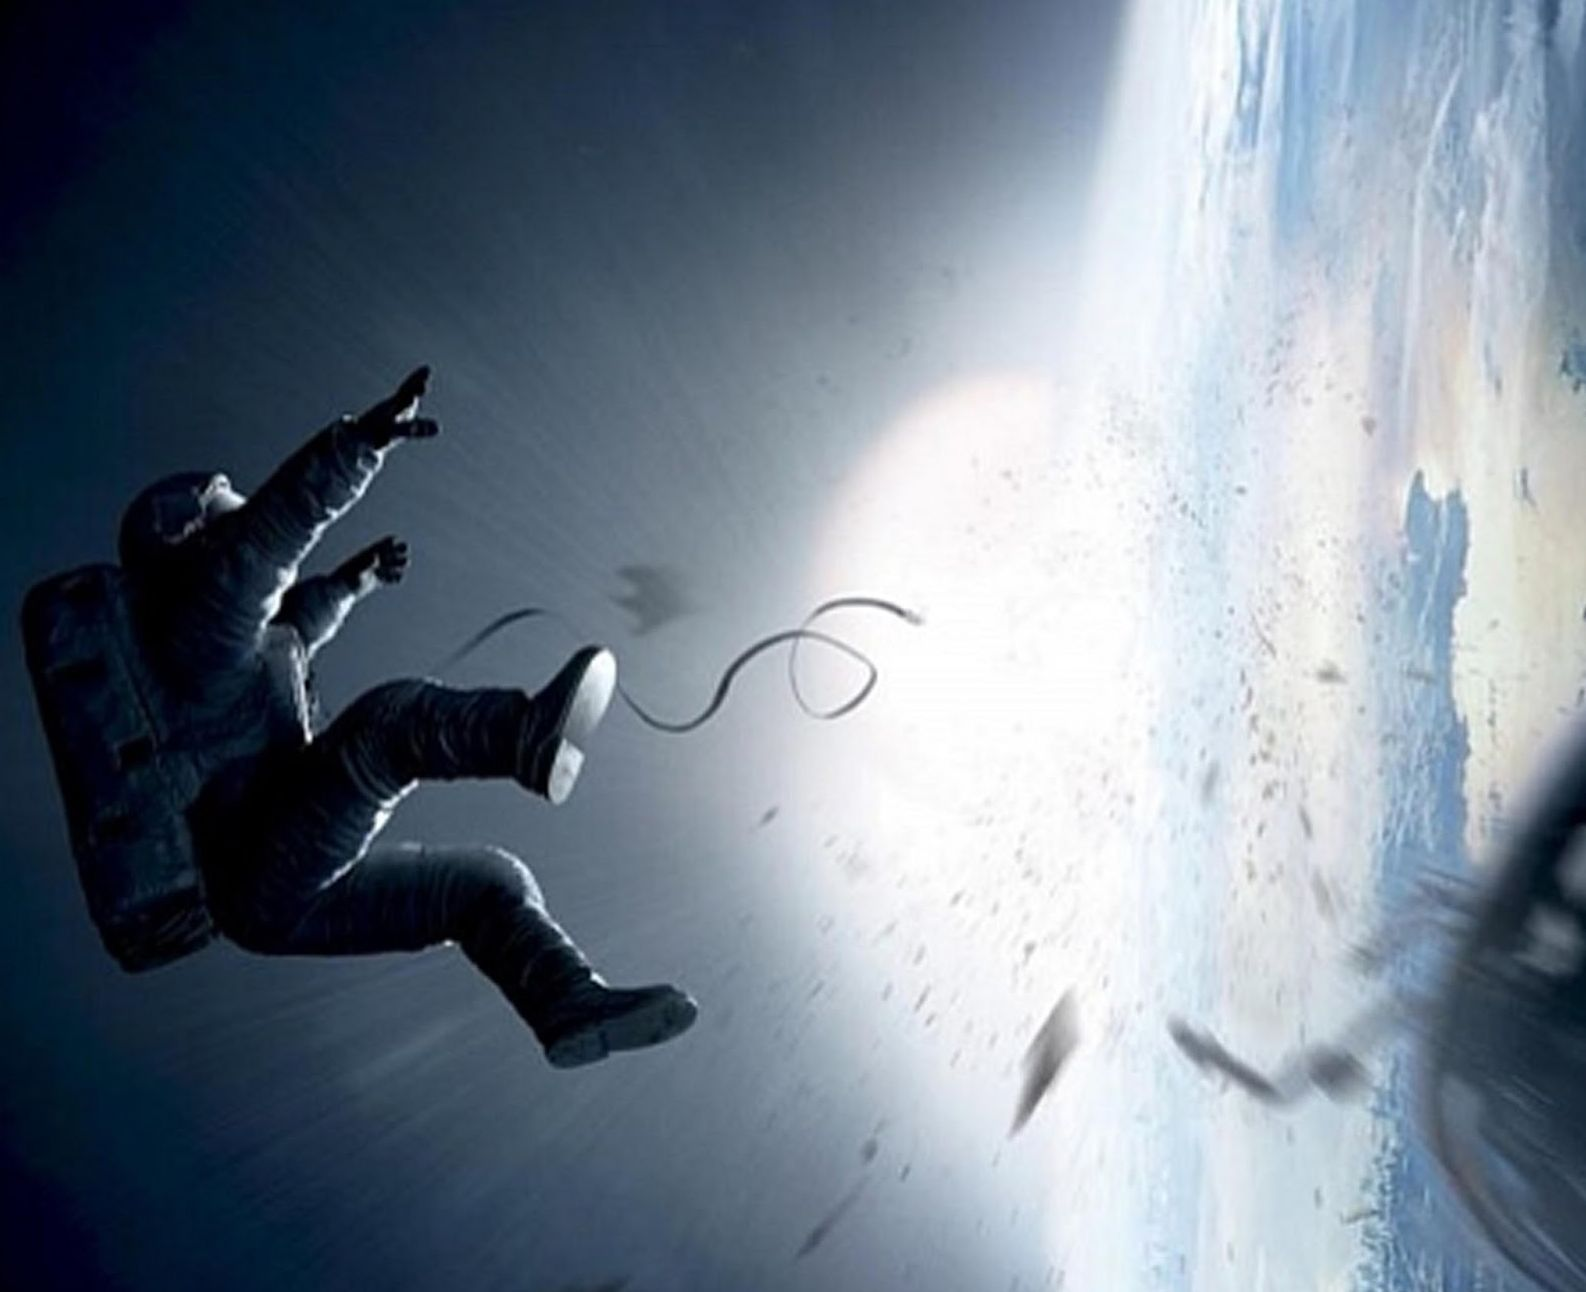 Cool action shot from Gravity